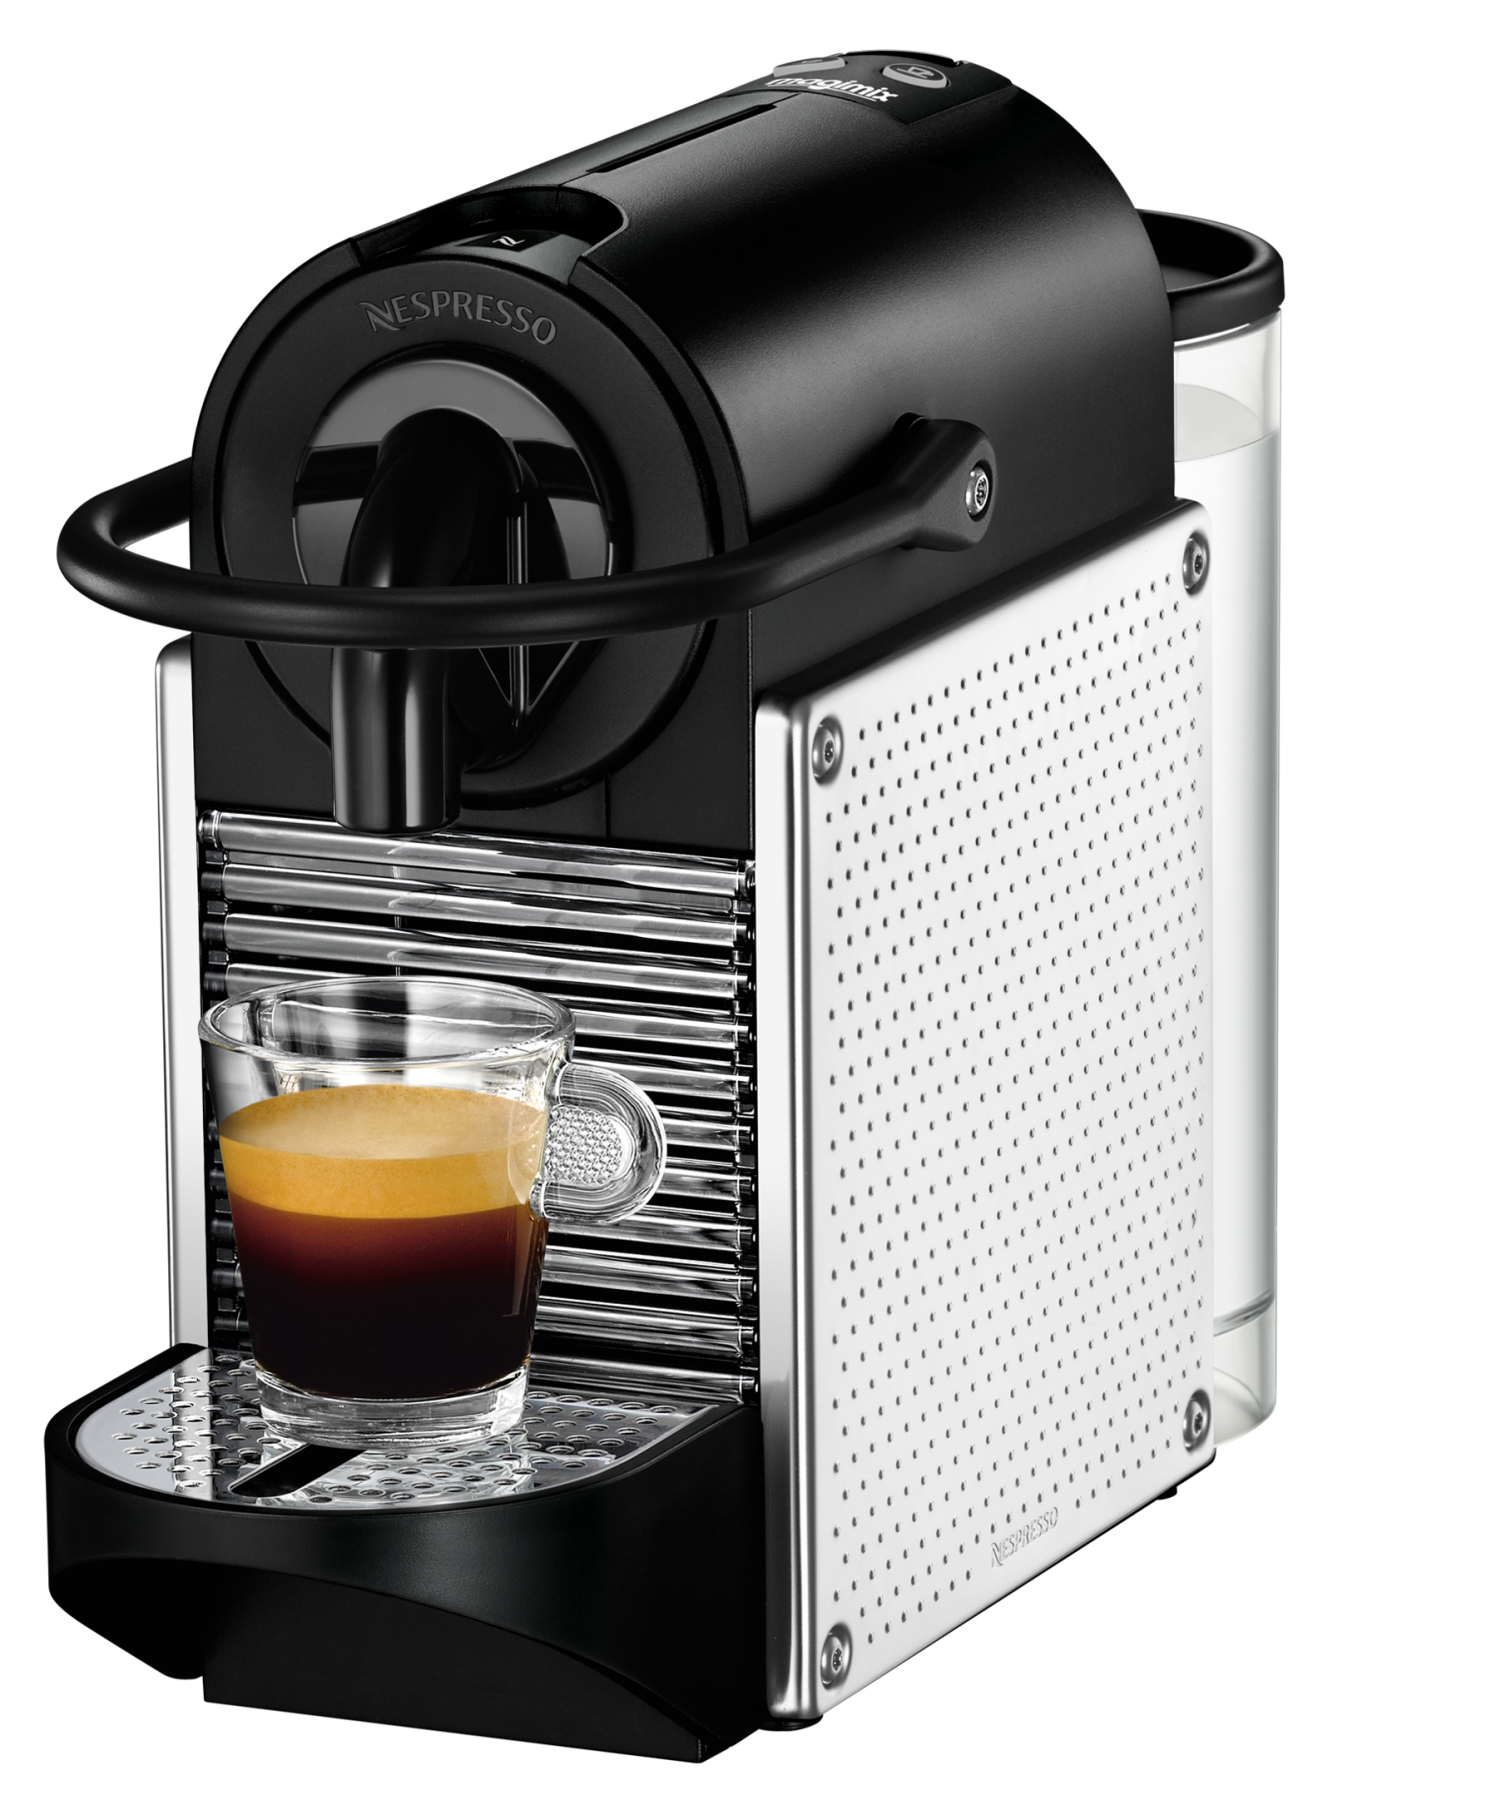 dtartrage nespresso pixie cool nespresso gemini cs with. Black Bedroom Furniture Sets. Home Design Ideas